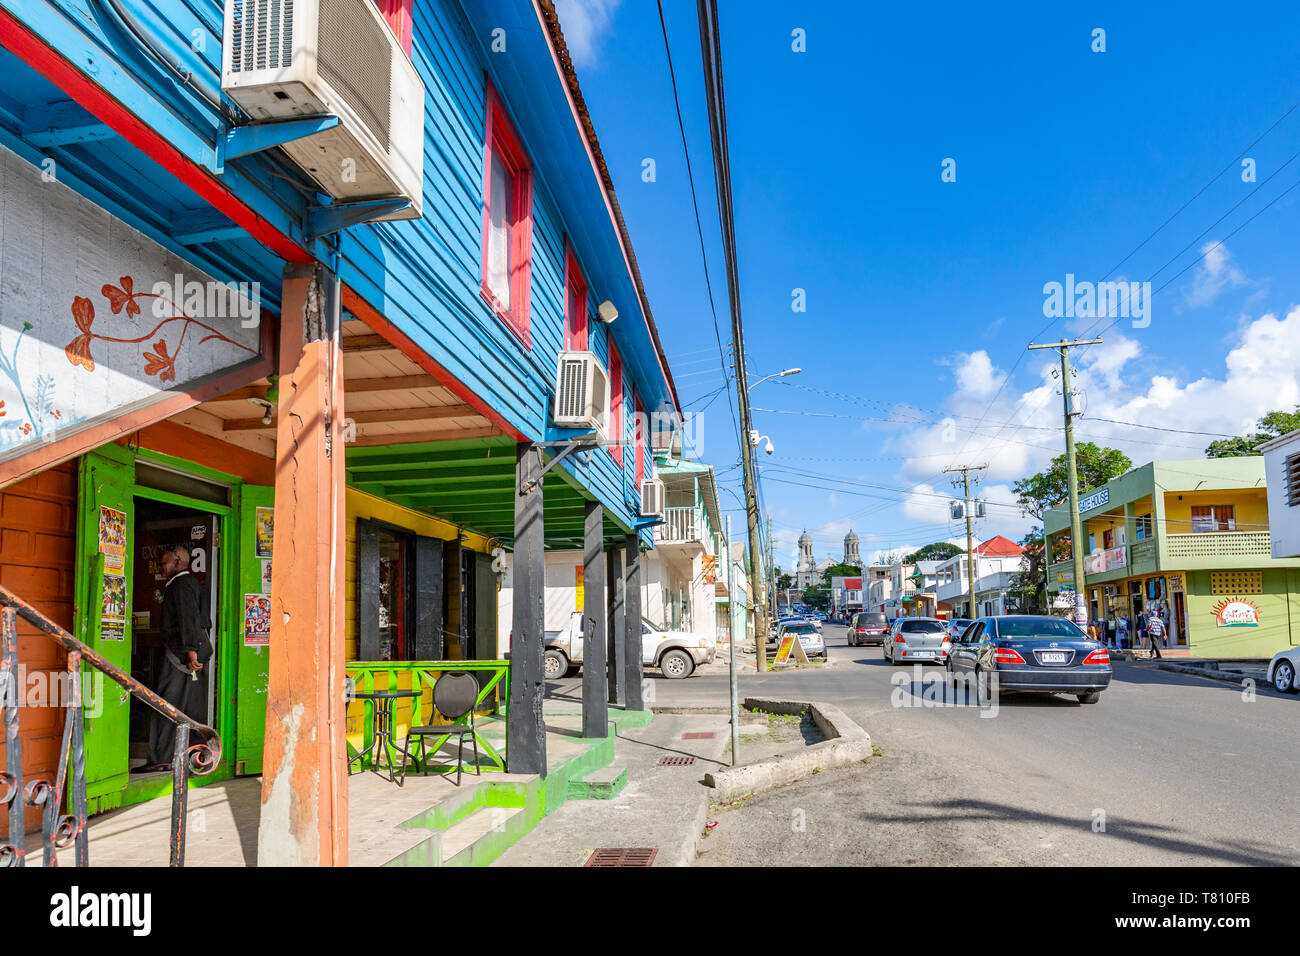 View of shop and Cathedral on Newgate Street, St. John's, Antigua, West Indies, Caribbean, Central America Stock Photo